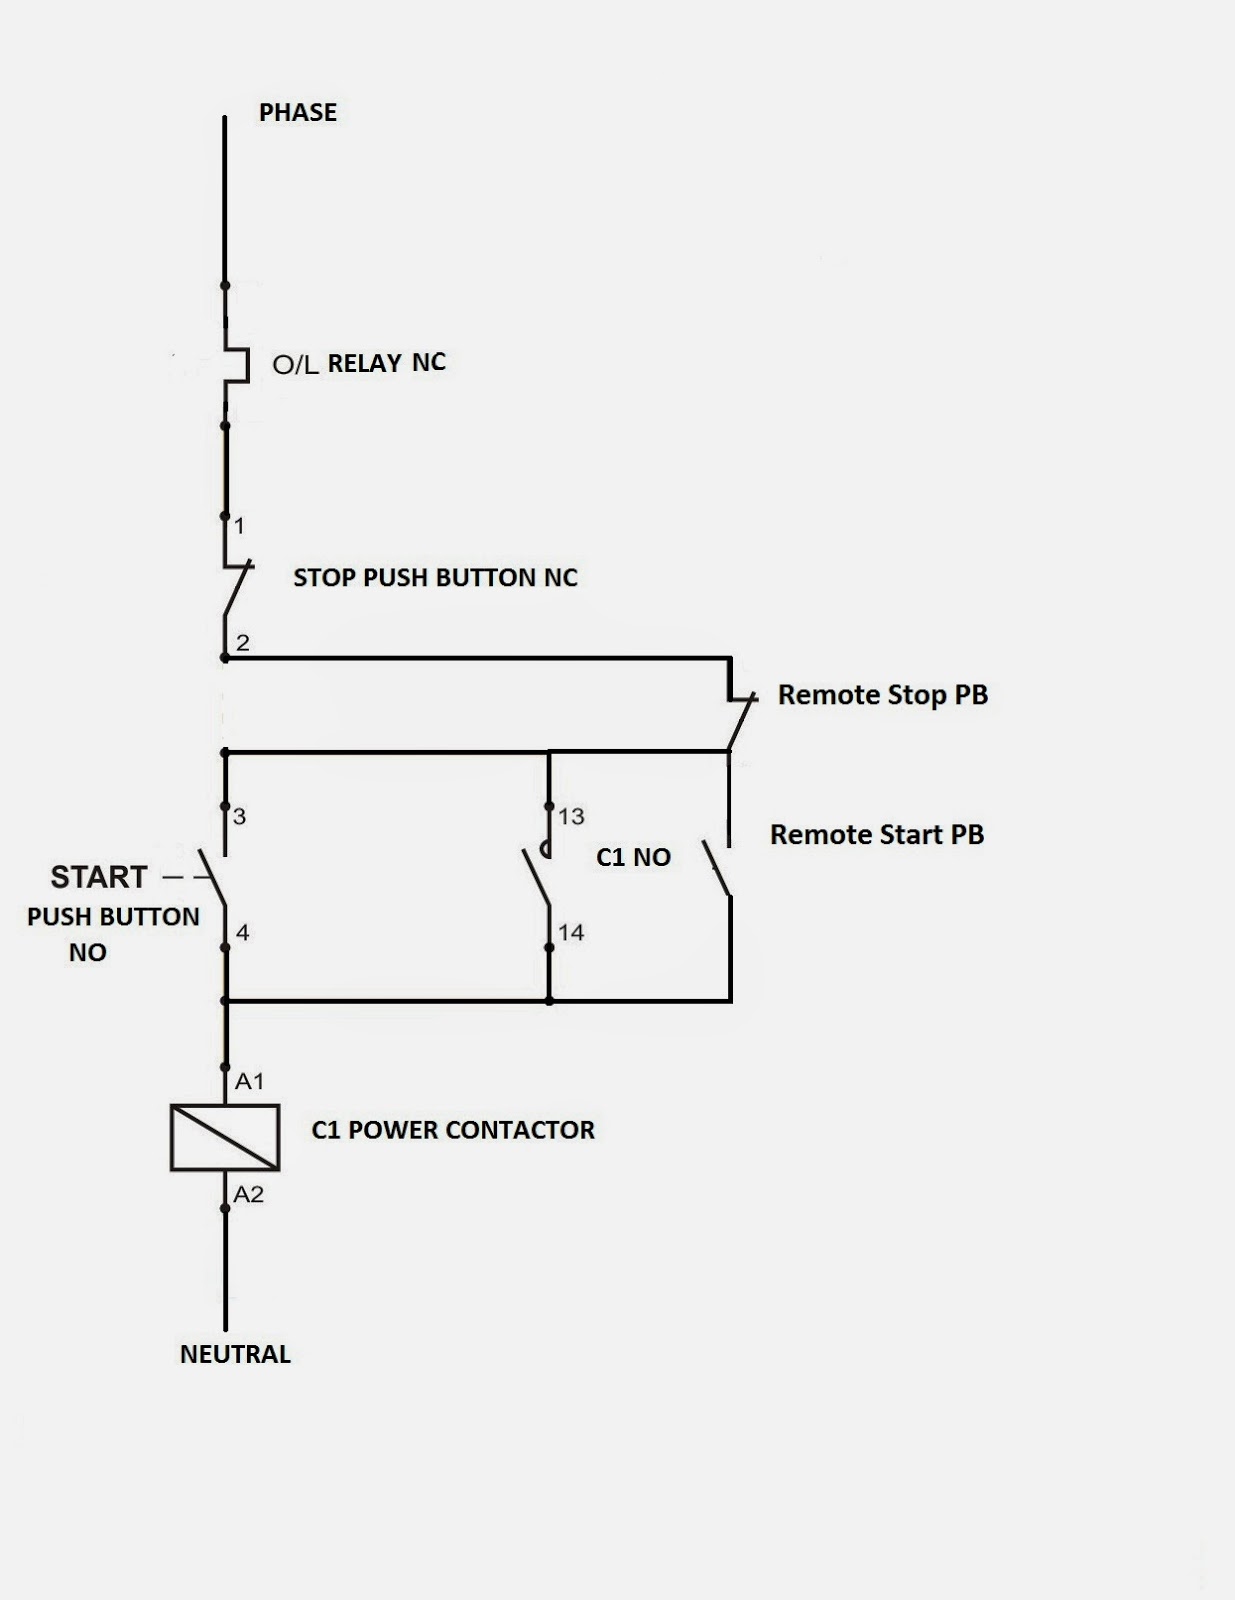 Direct Online Wiring Diagram Library Motor Stop Start Circuit Dol Starter With Remote